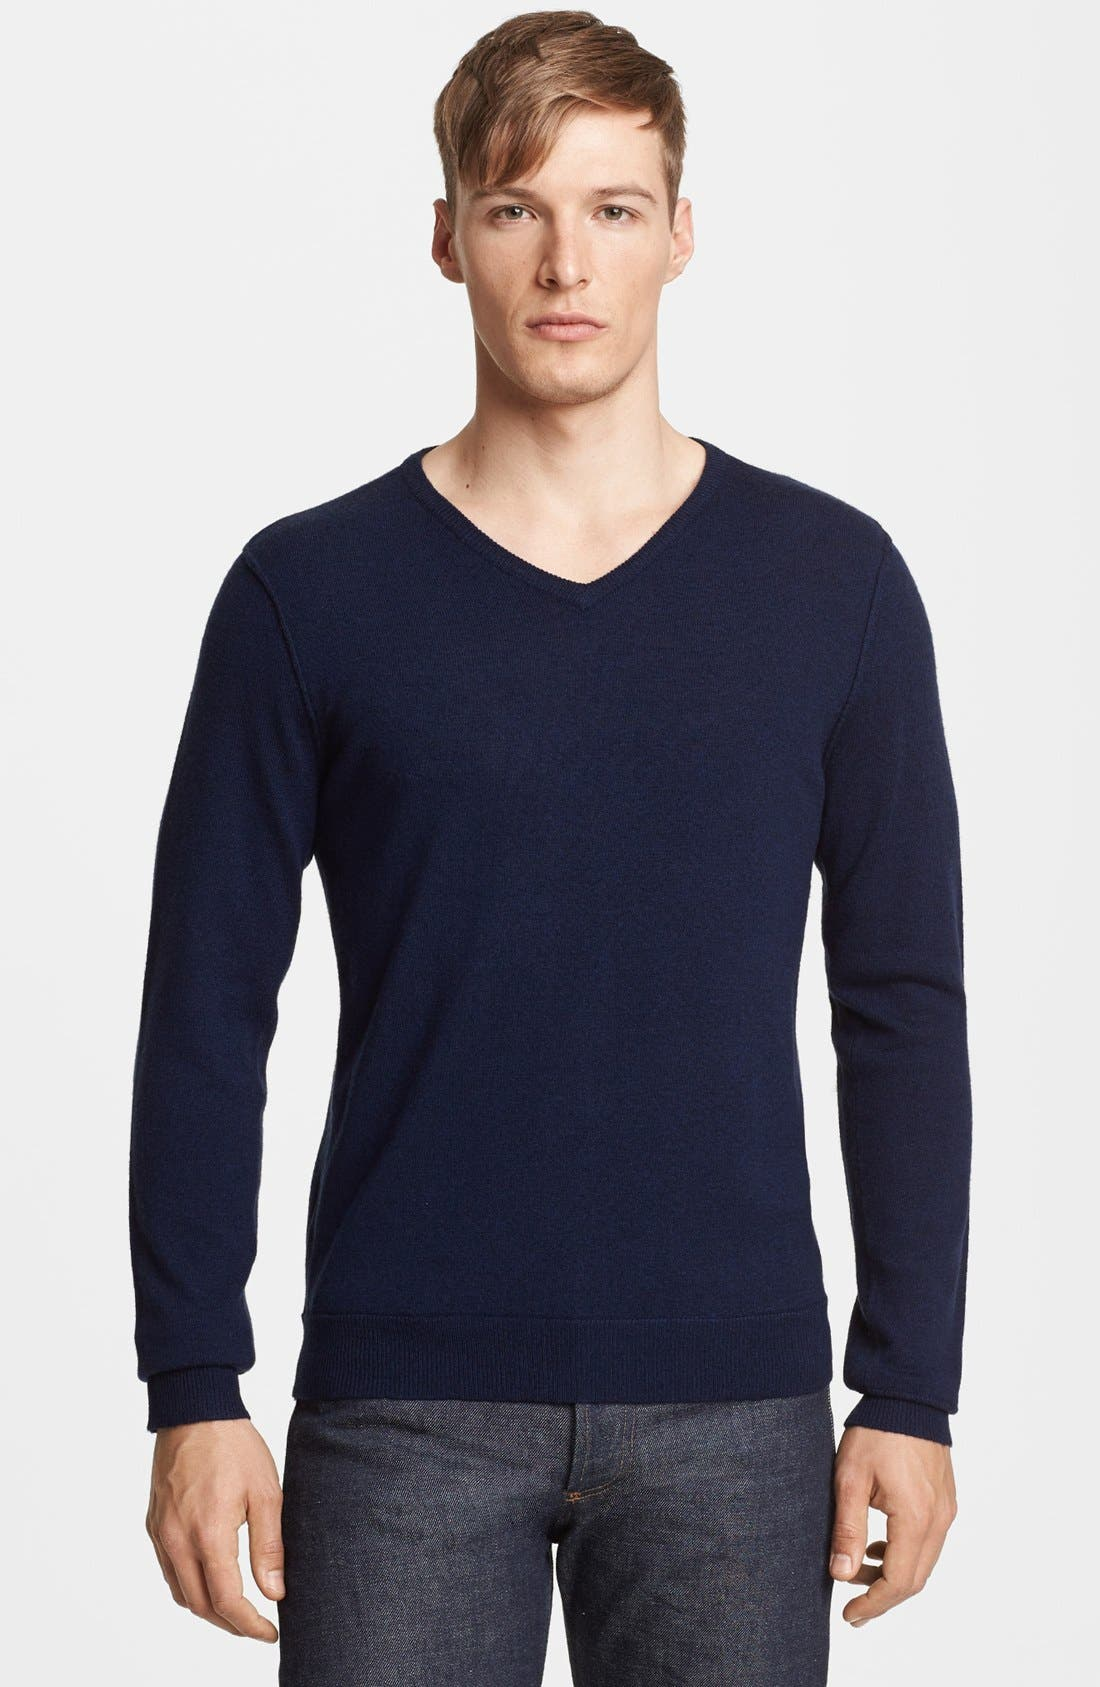 Main Image - rag & bone 'Abingdon' V-Neck Merino Wool Sweater